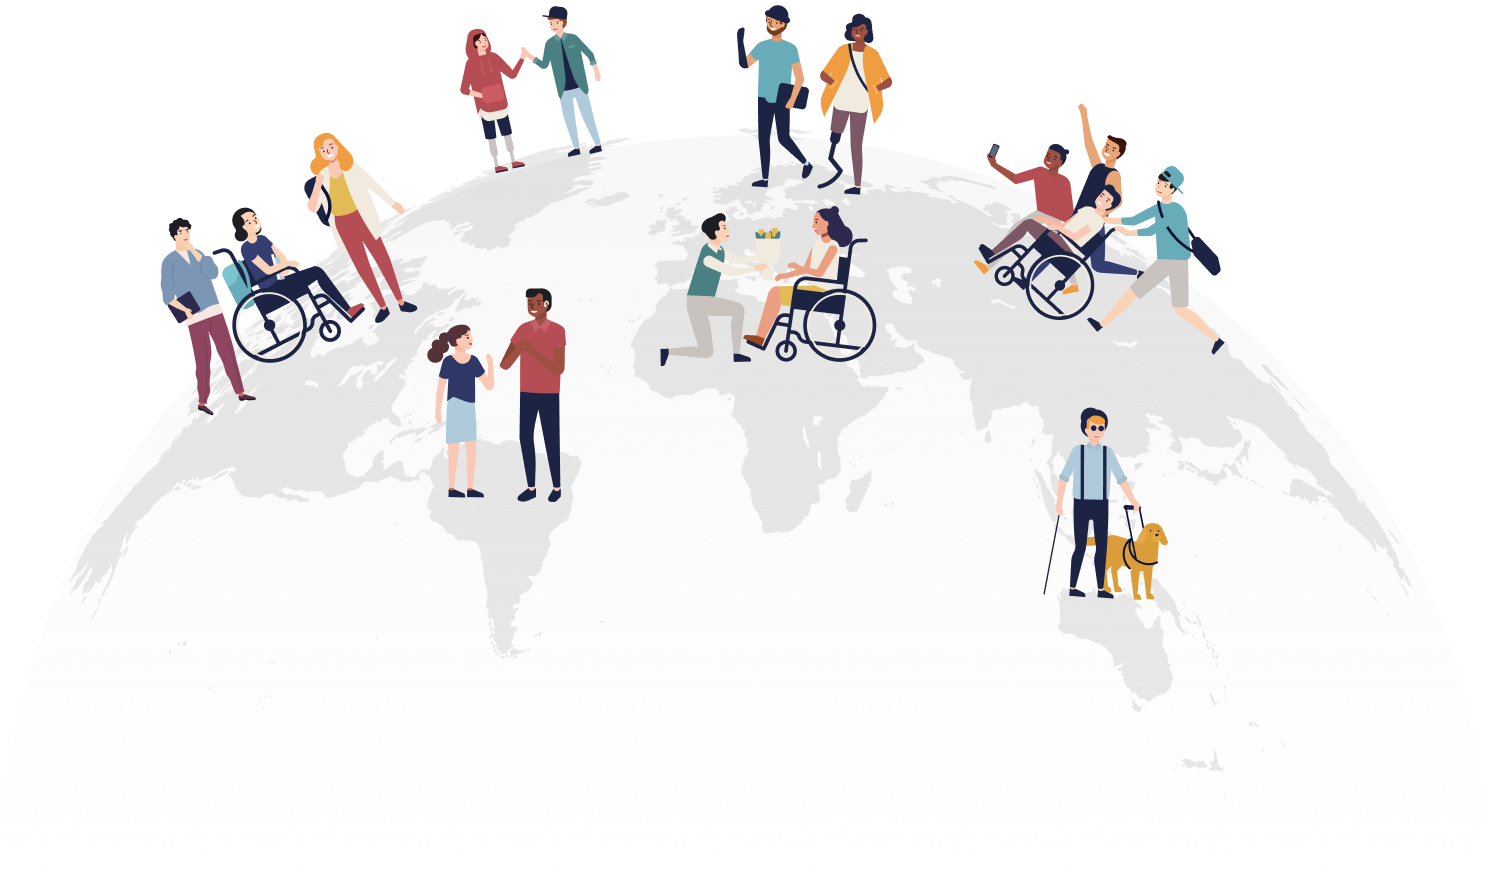 diverse world wide population, with and without disabilities